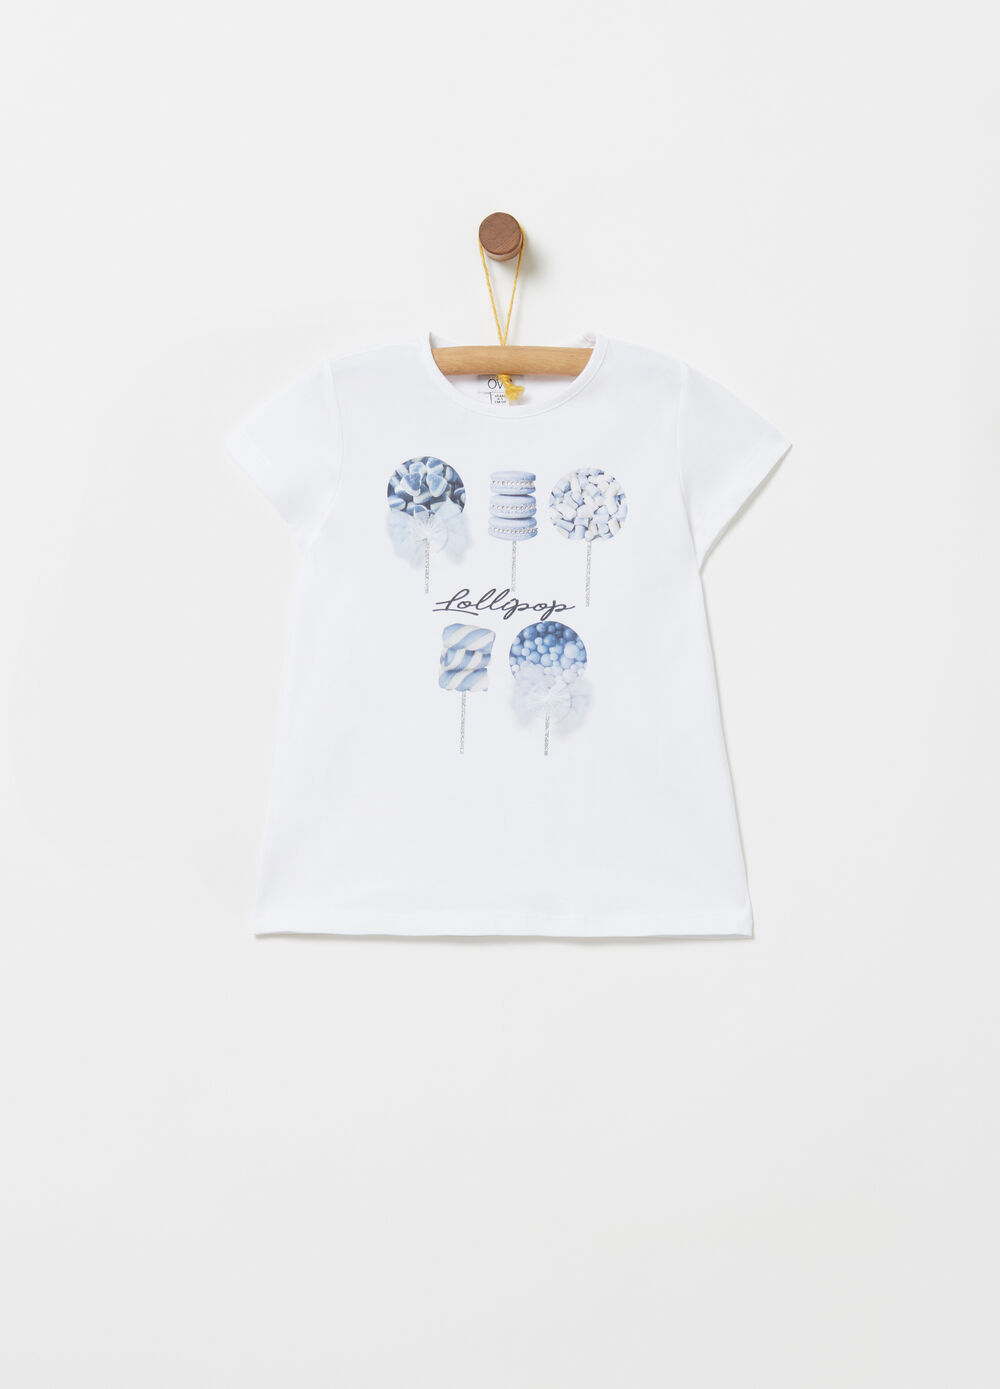 T-shirt with glitter Lollipop print and diamantés